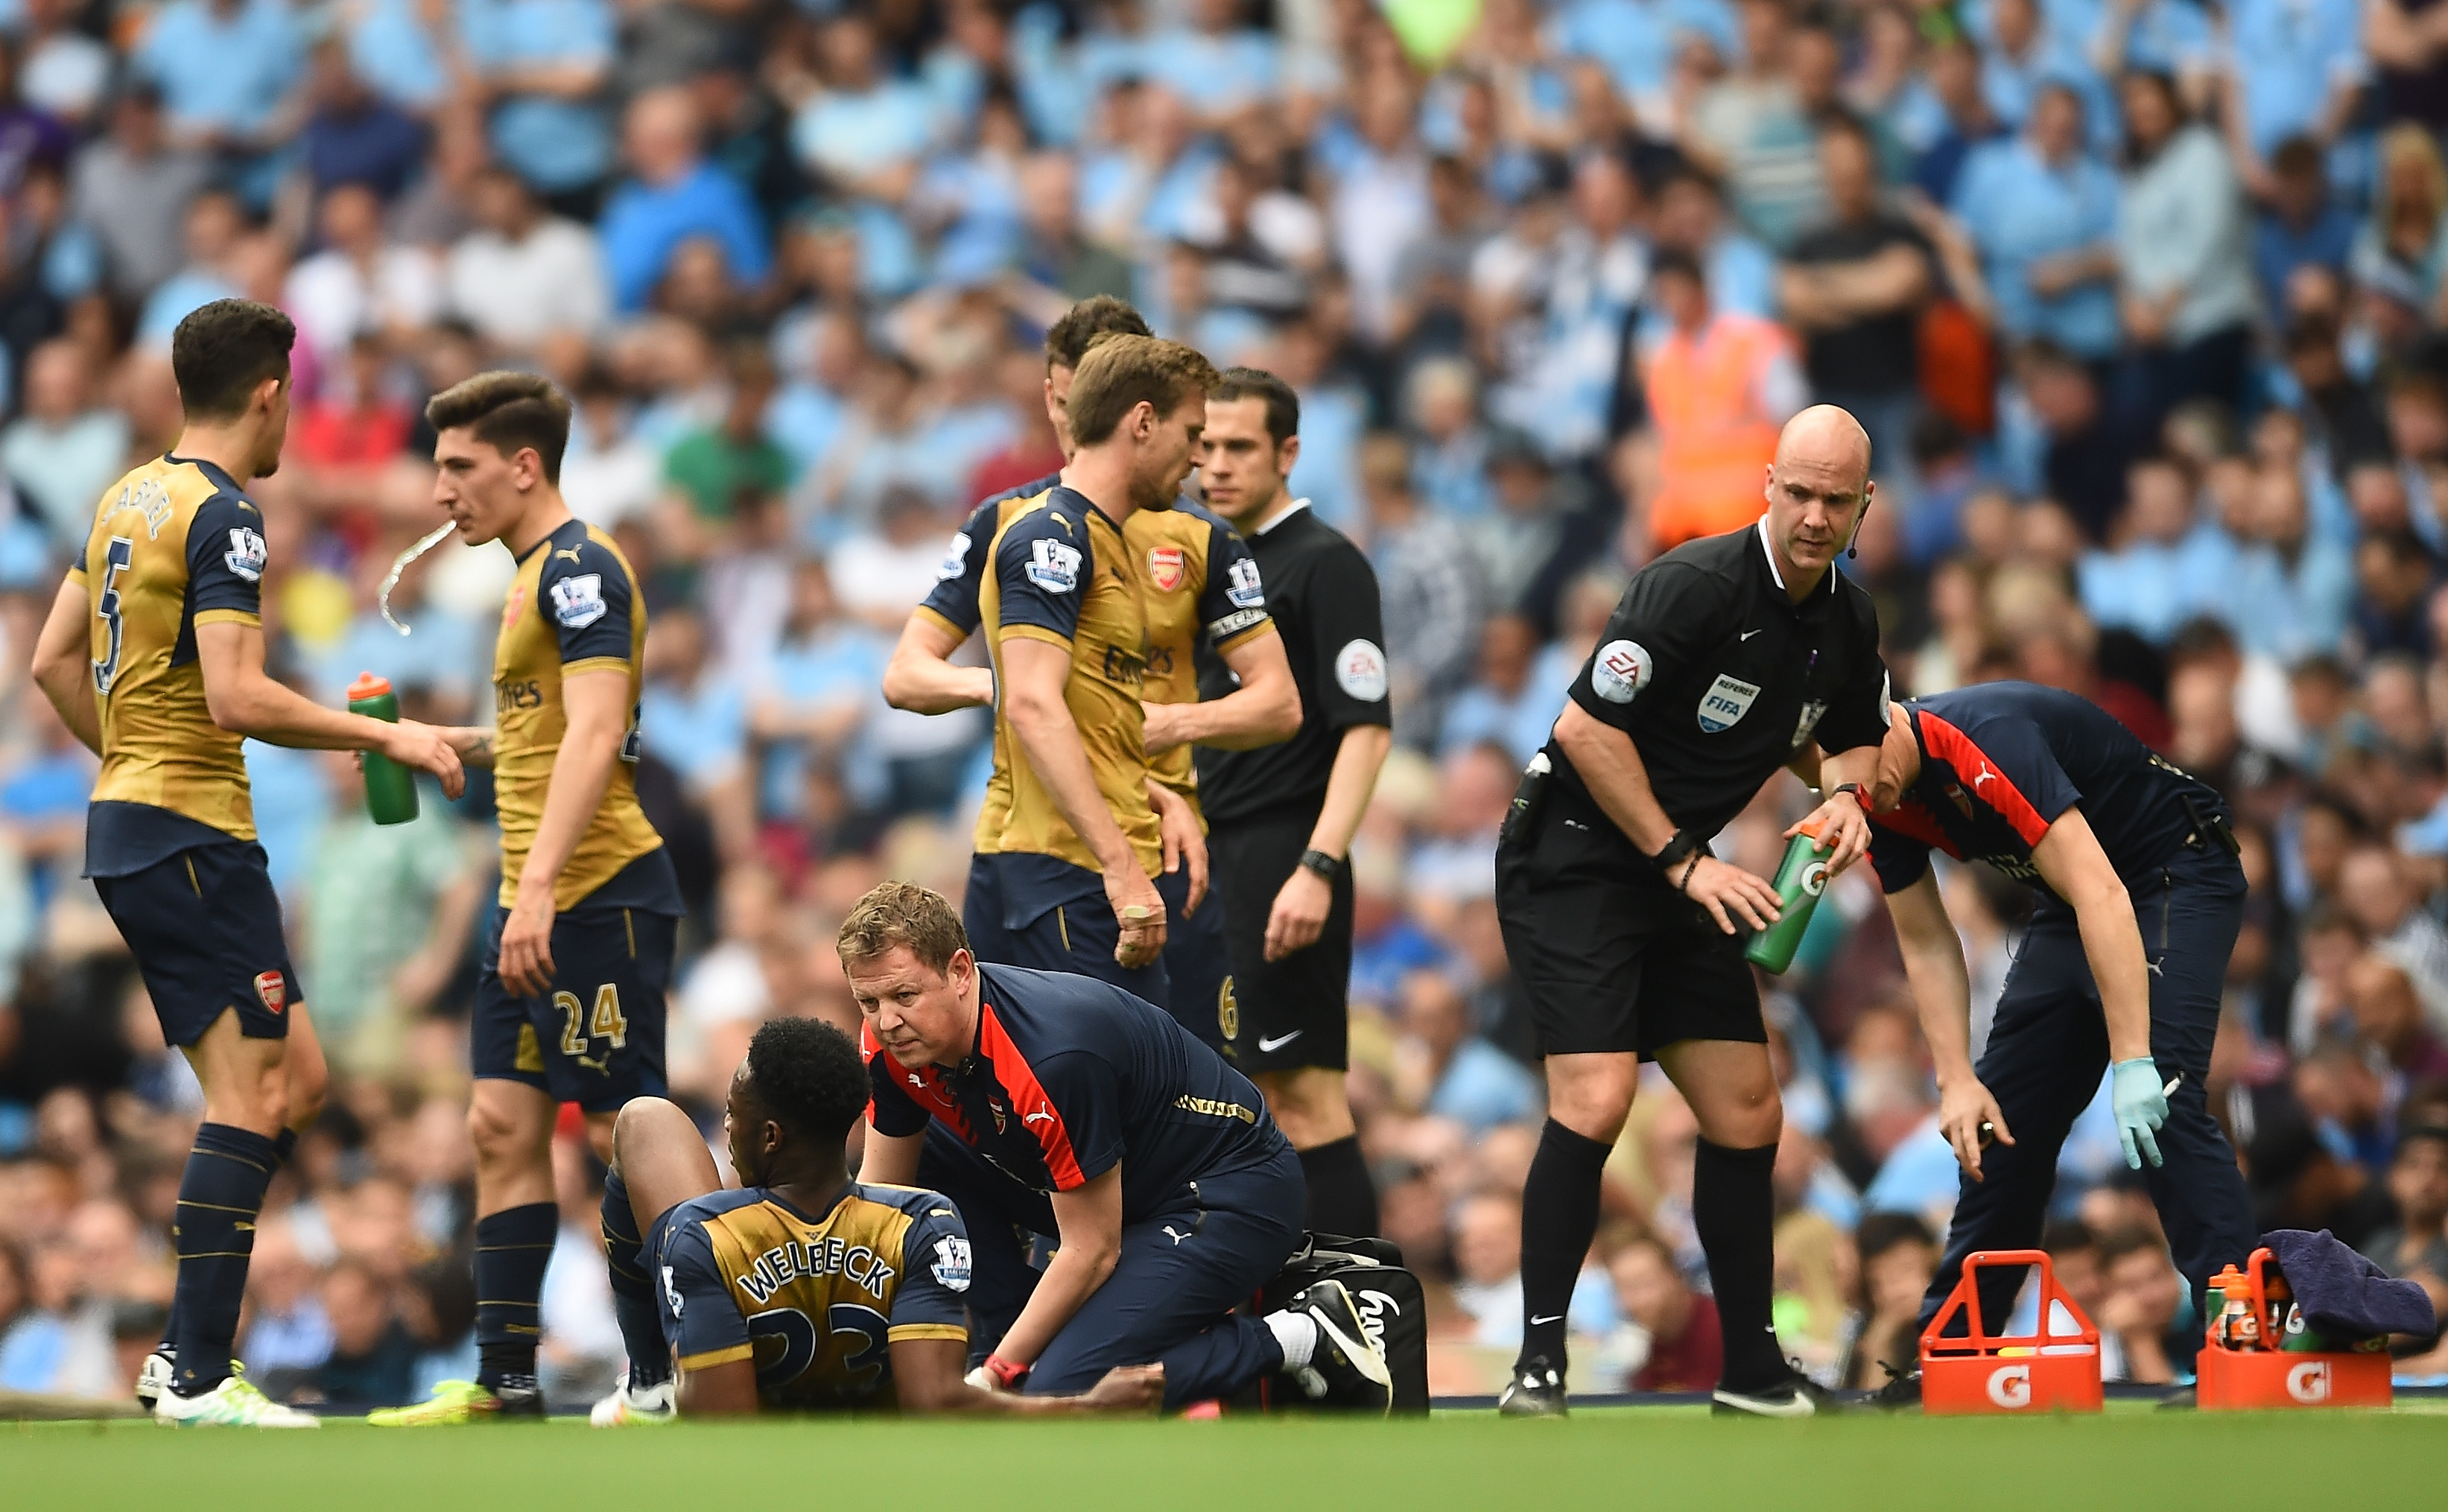 Arsenal injury news: Danny Welbeck news, winger ruled out Euros, Jack Wilshere profits from misfortune